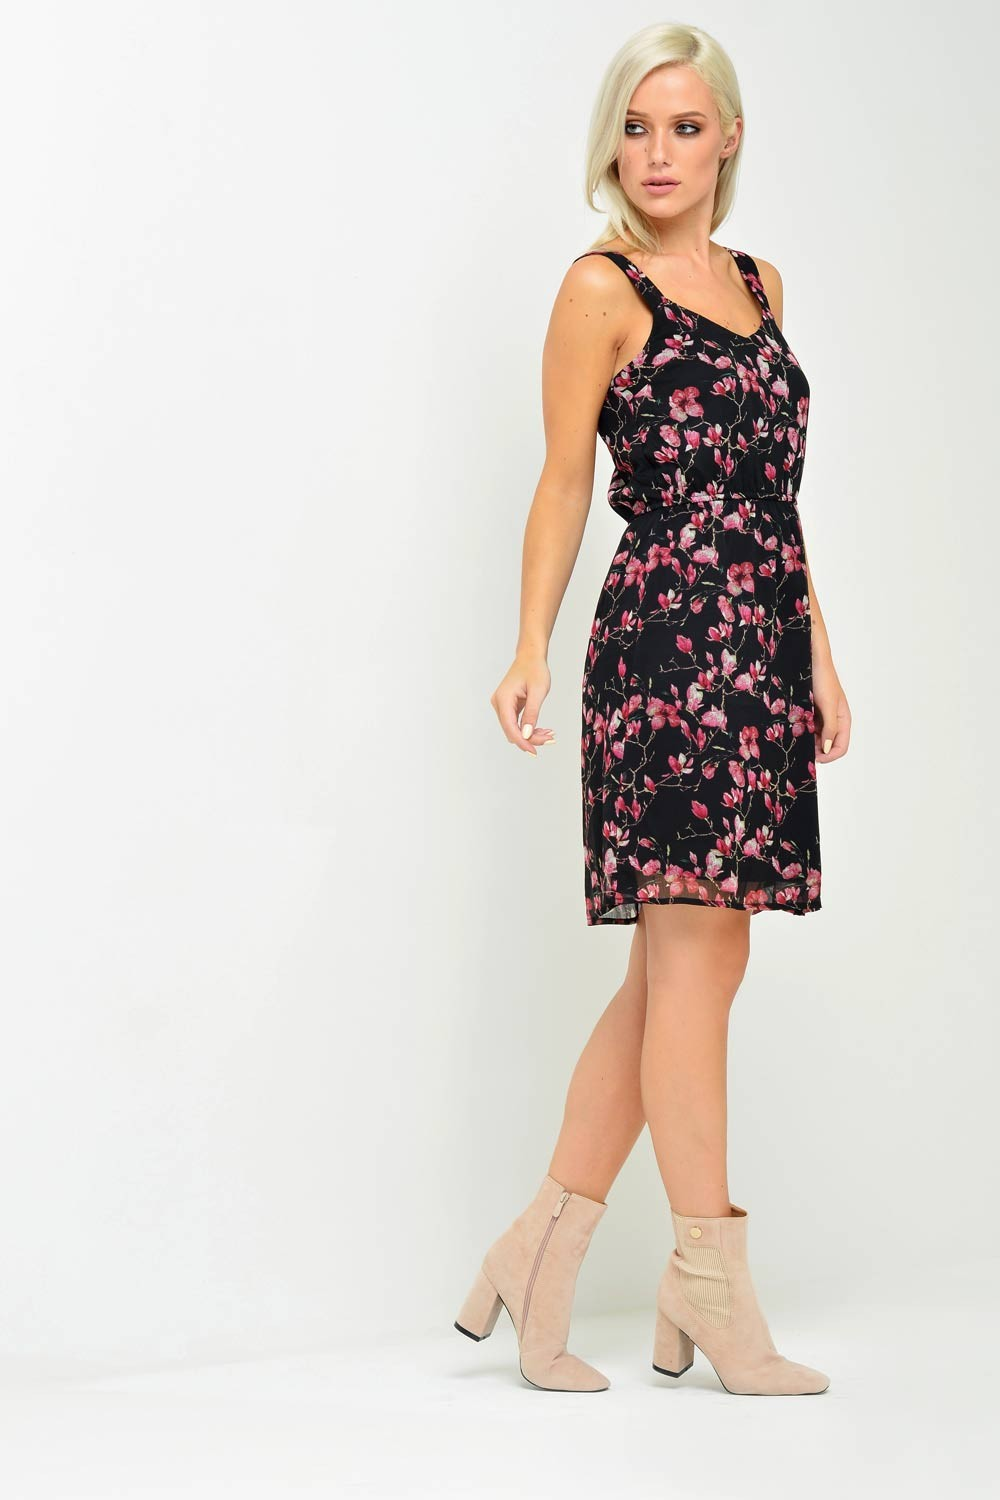 Mona S/L Short Floral Dress in Black and Pink